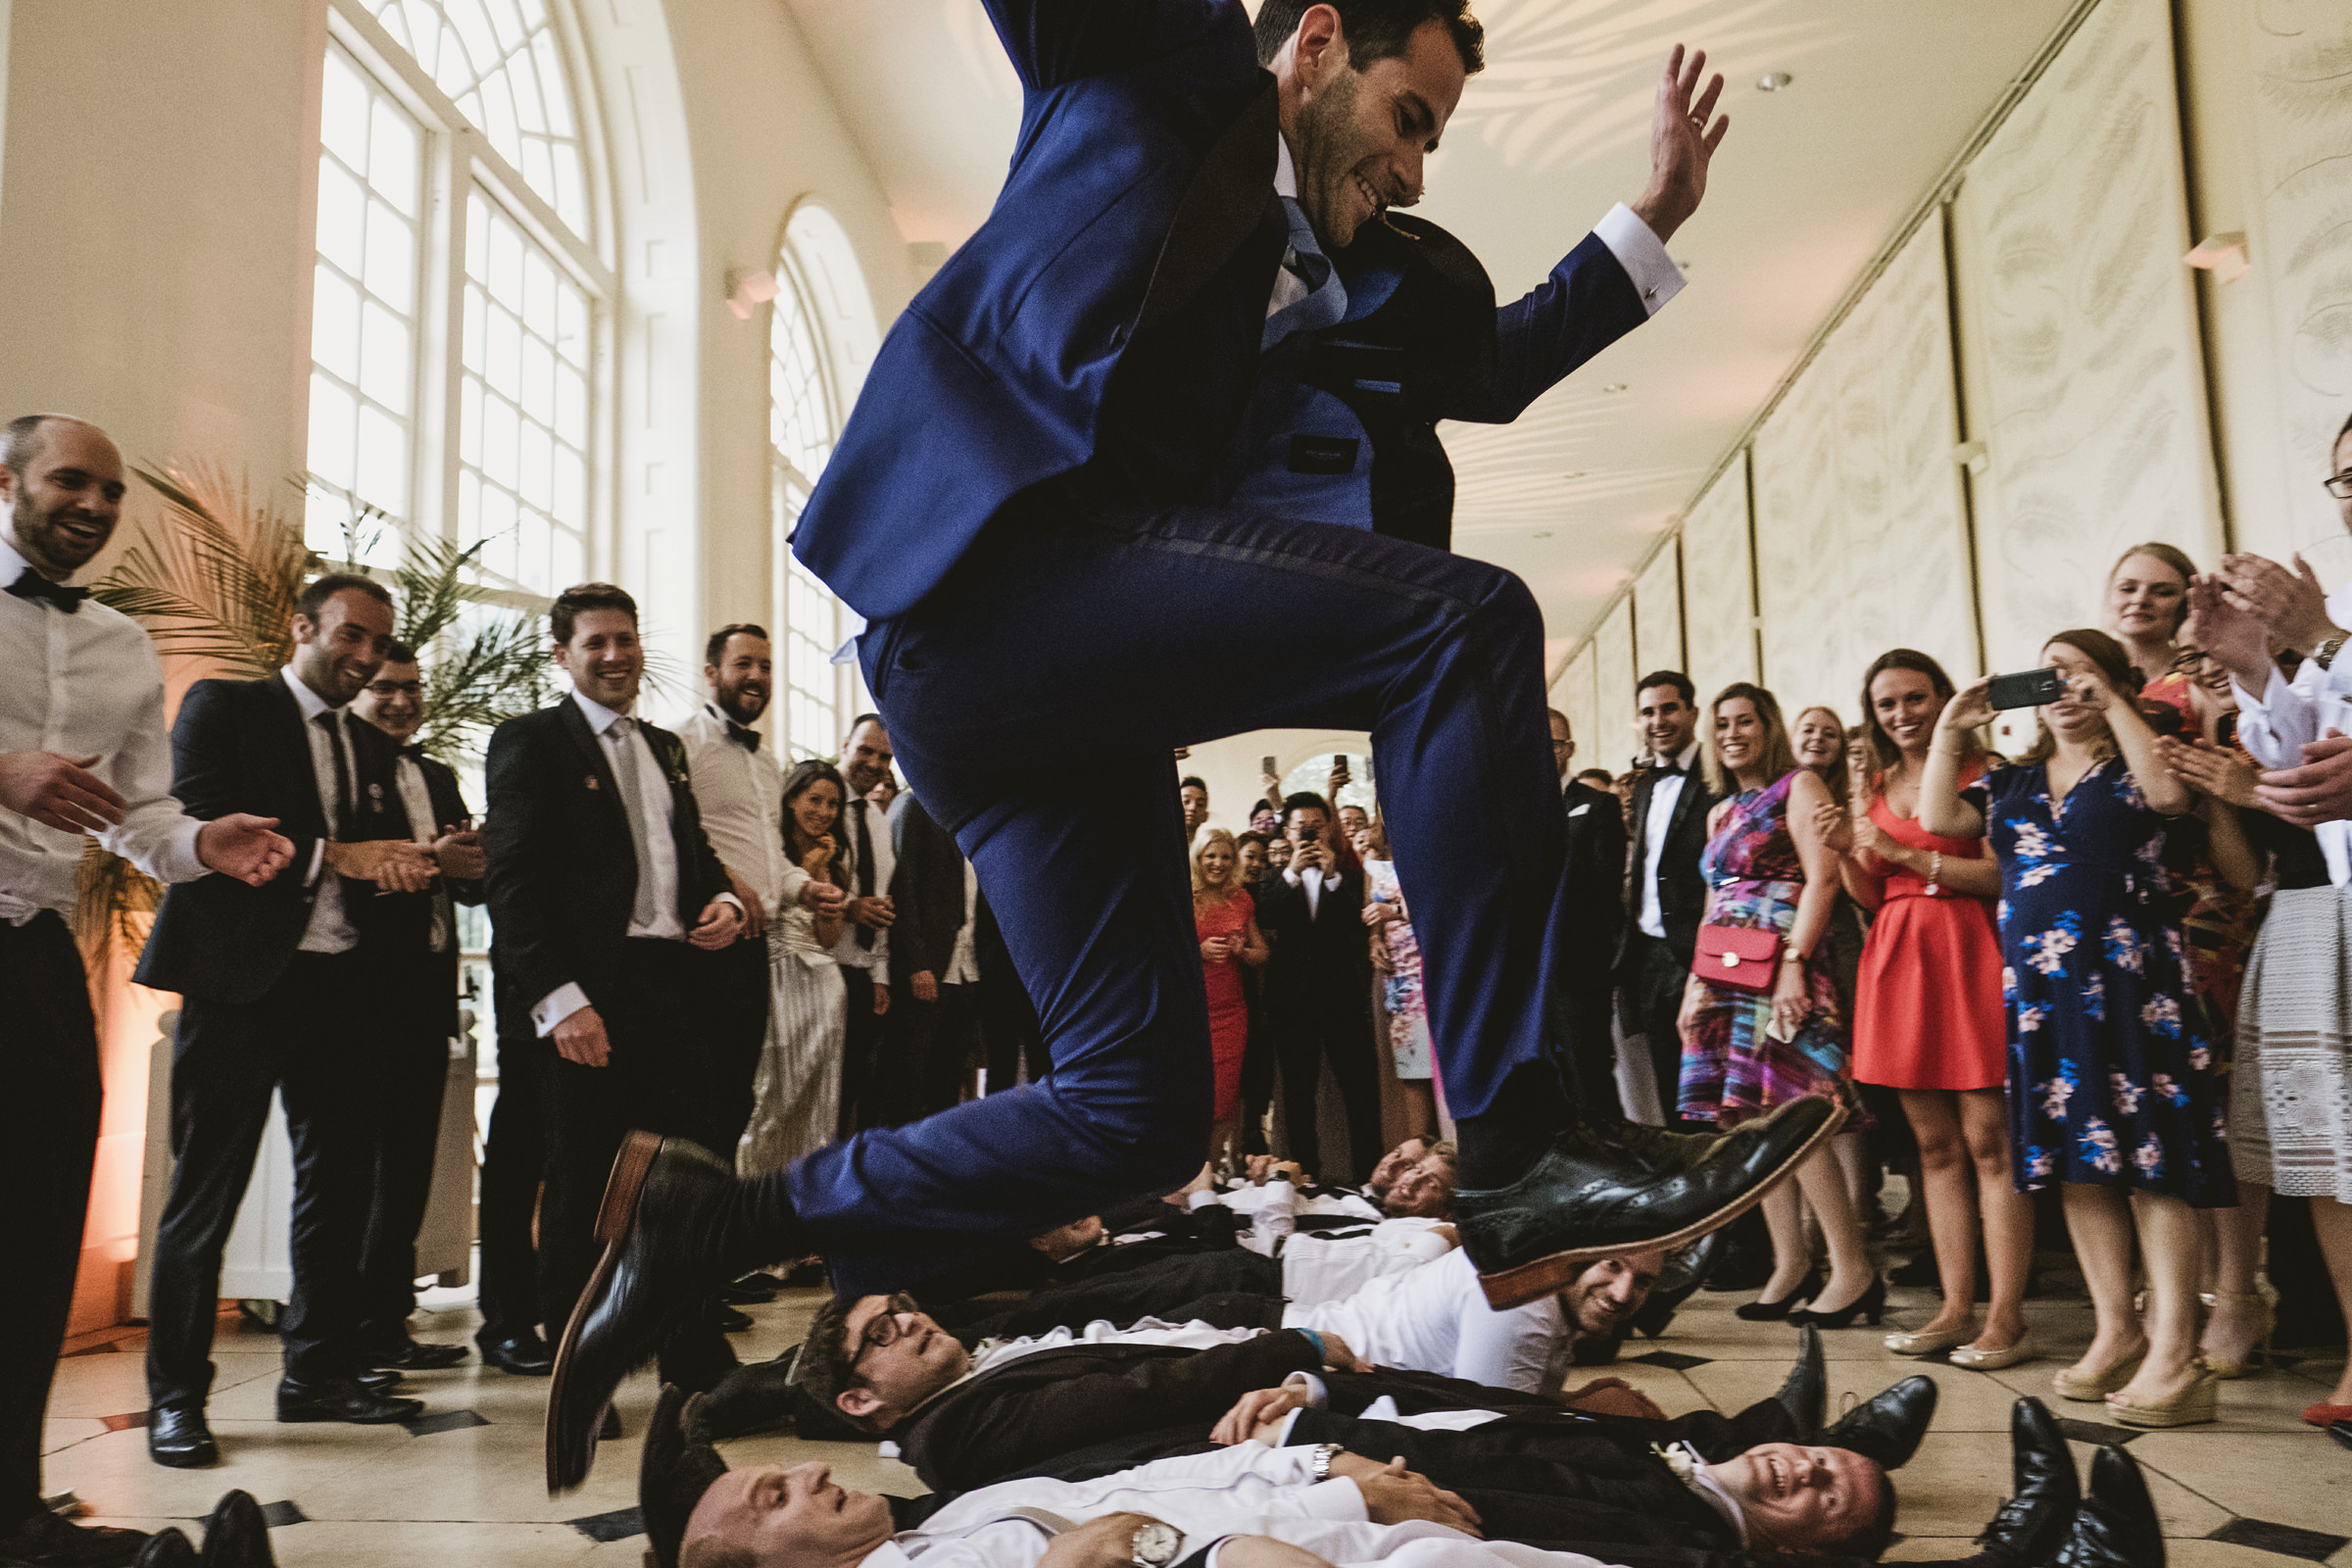 Groom leaping over prone guests at Kew Gardens UK - photo by York Place Studios